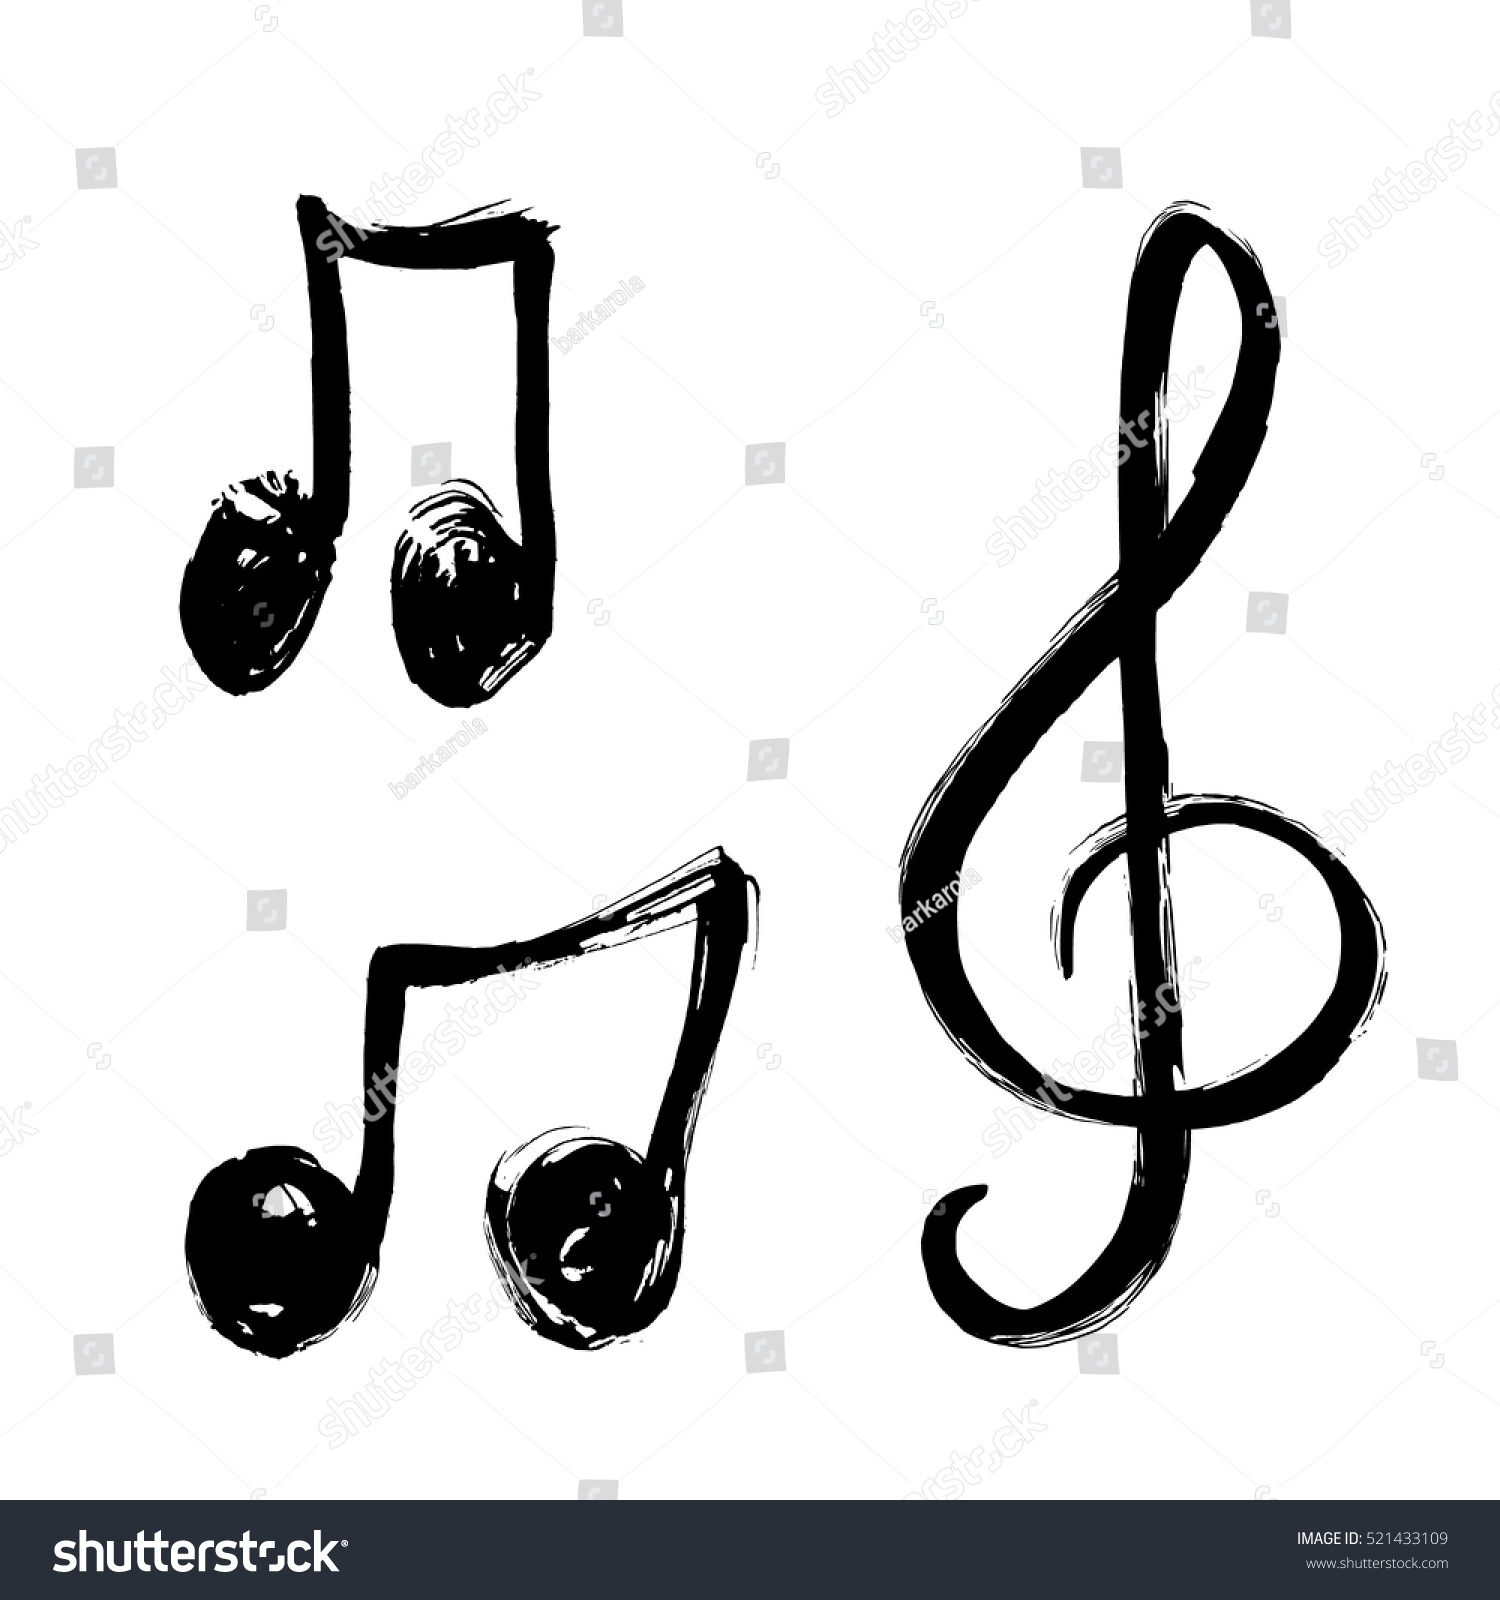 hand stock vector hd royalty free 521433109 shutterstock rh shutterstock com White Music Note Vector Music Notes